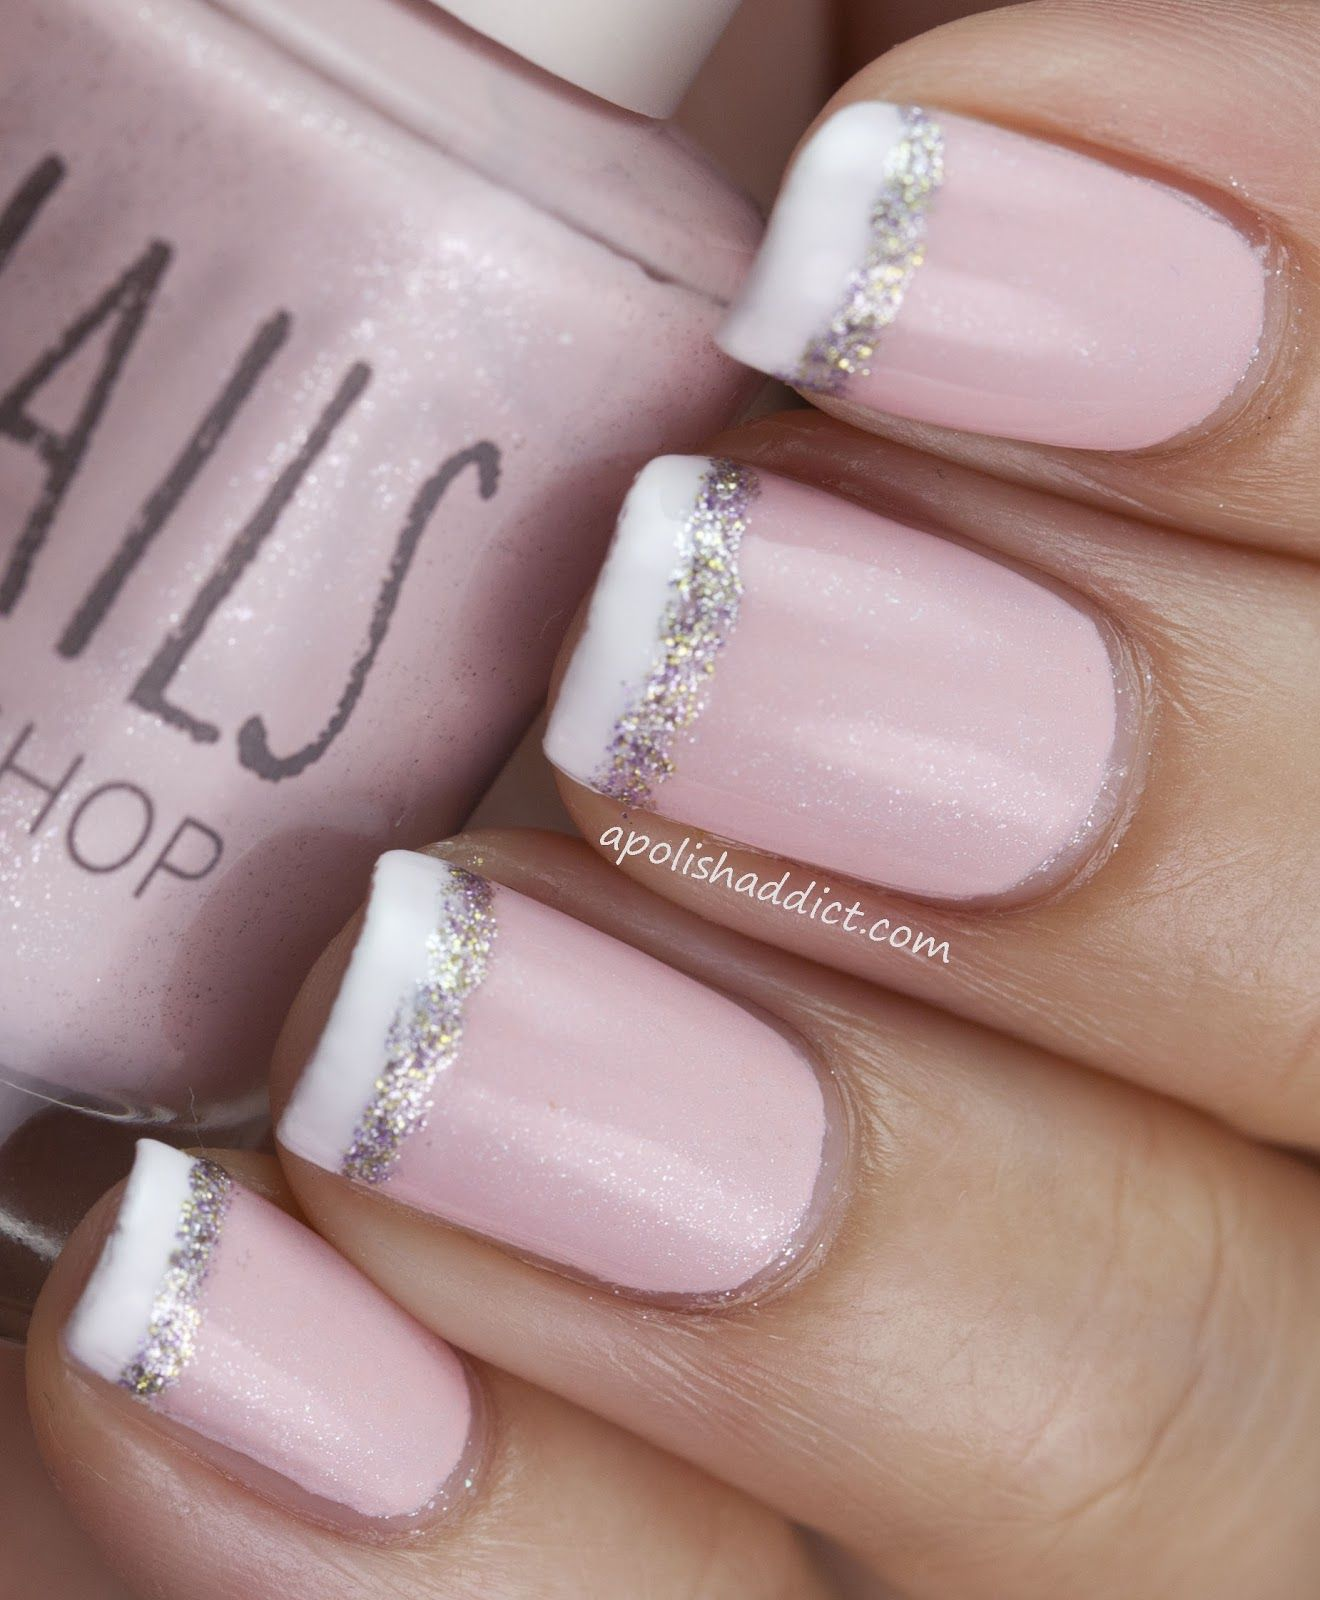 73 Best Nail Designs Of The Season | Make up & Nails | Pinterest ...